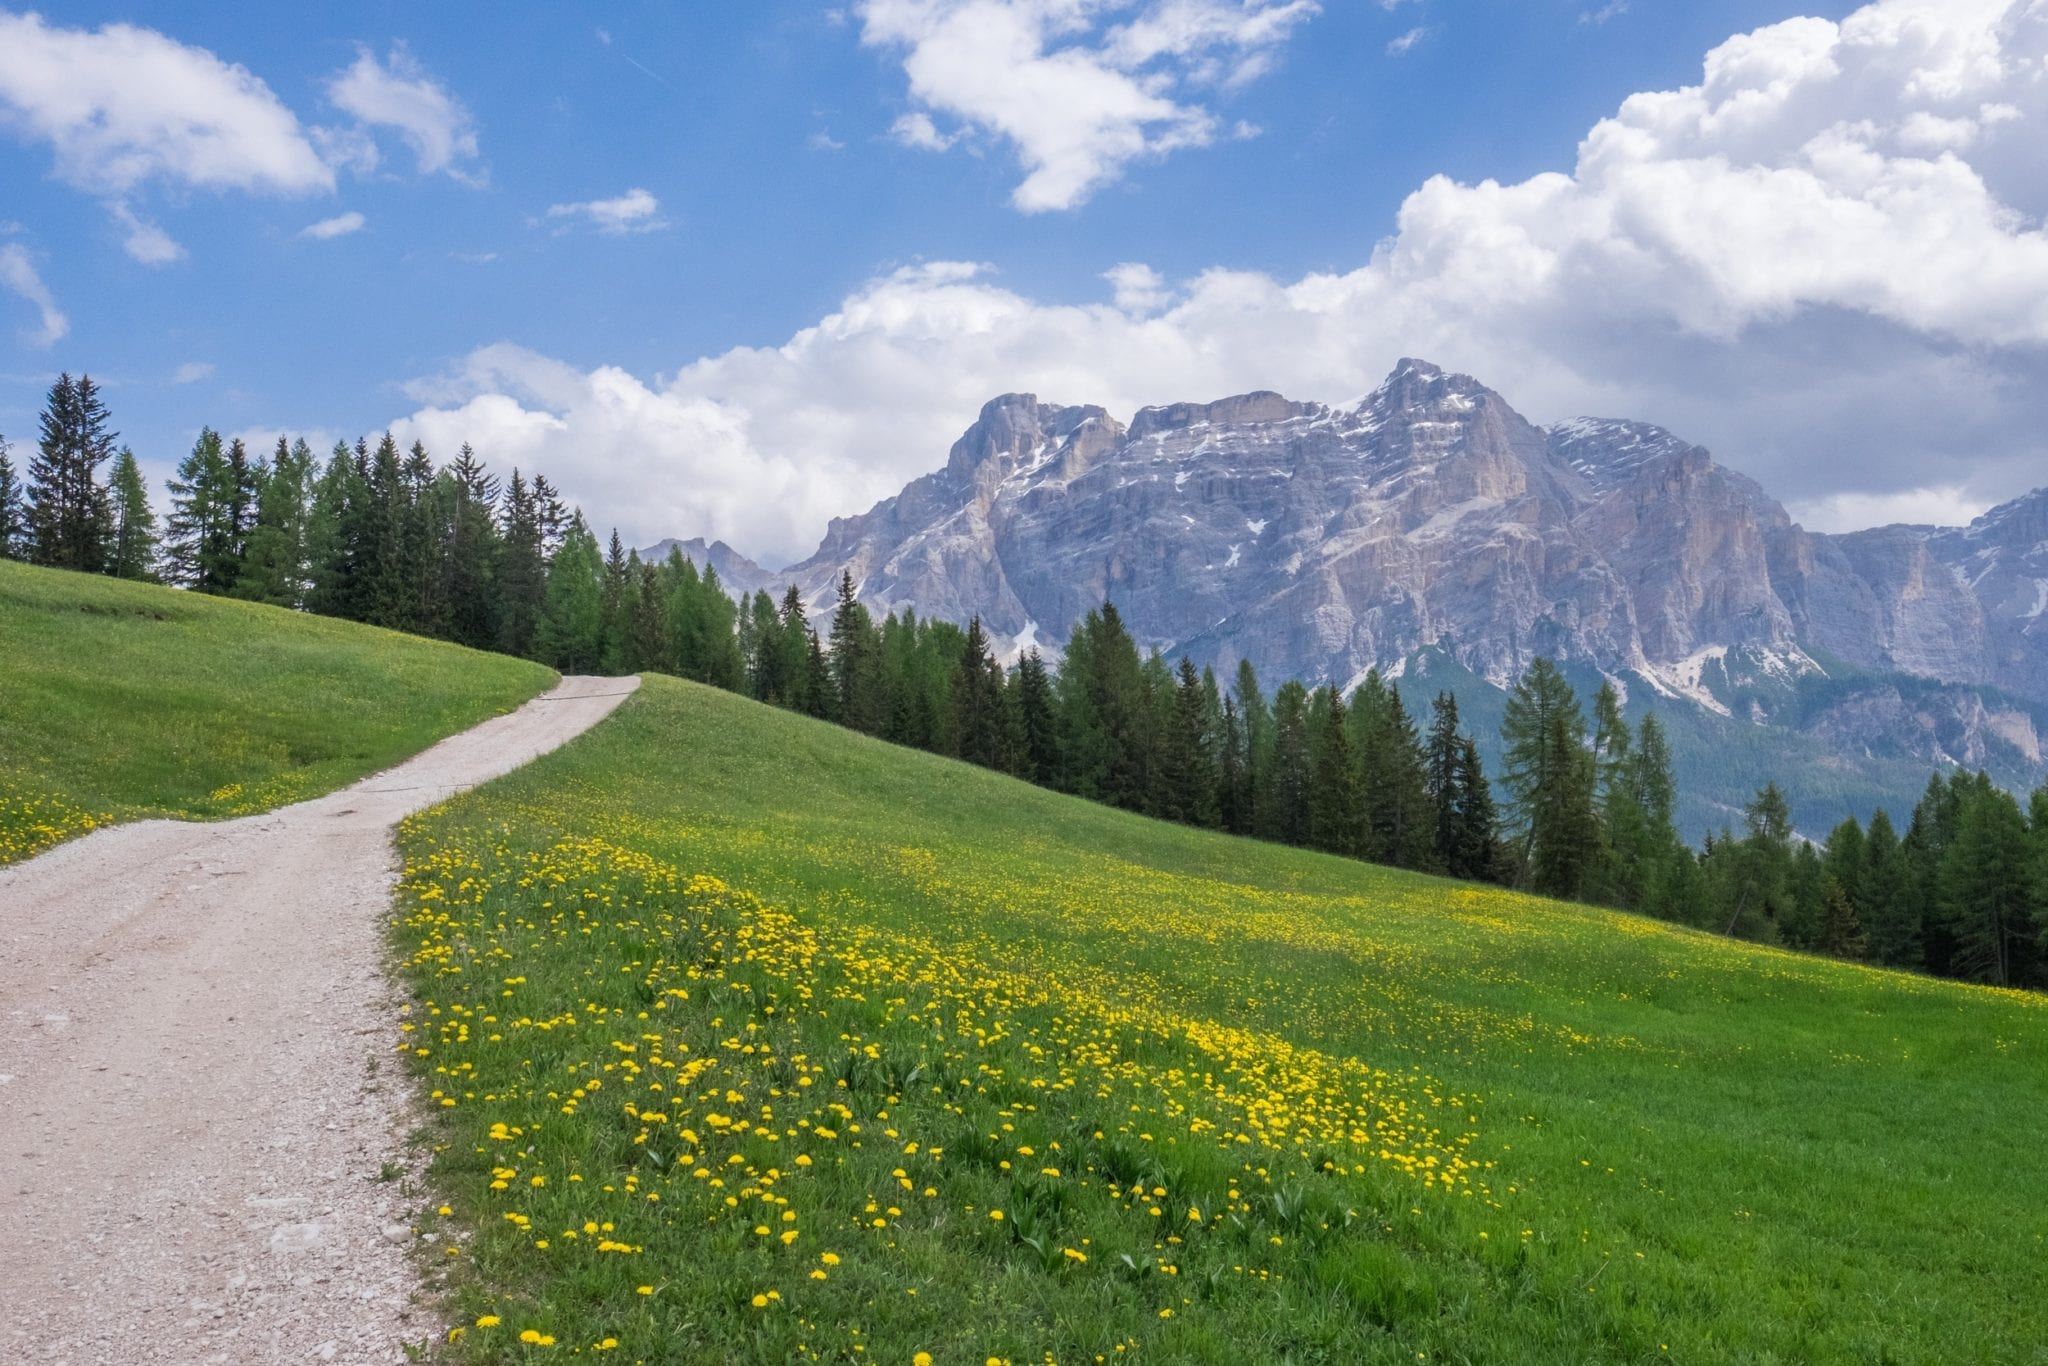 A view of a path on the left leading through green grass and yellow dandelions to the purple Dolomites set against a blue and white sky.